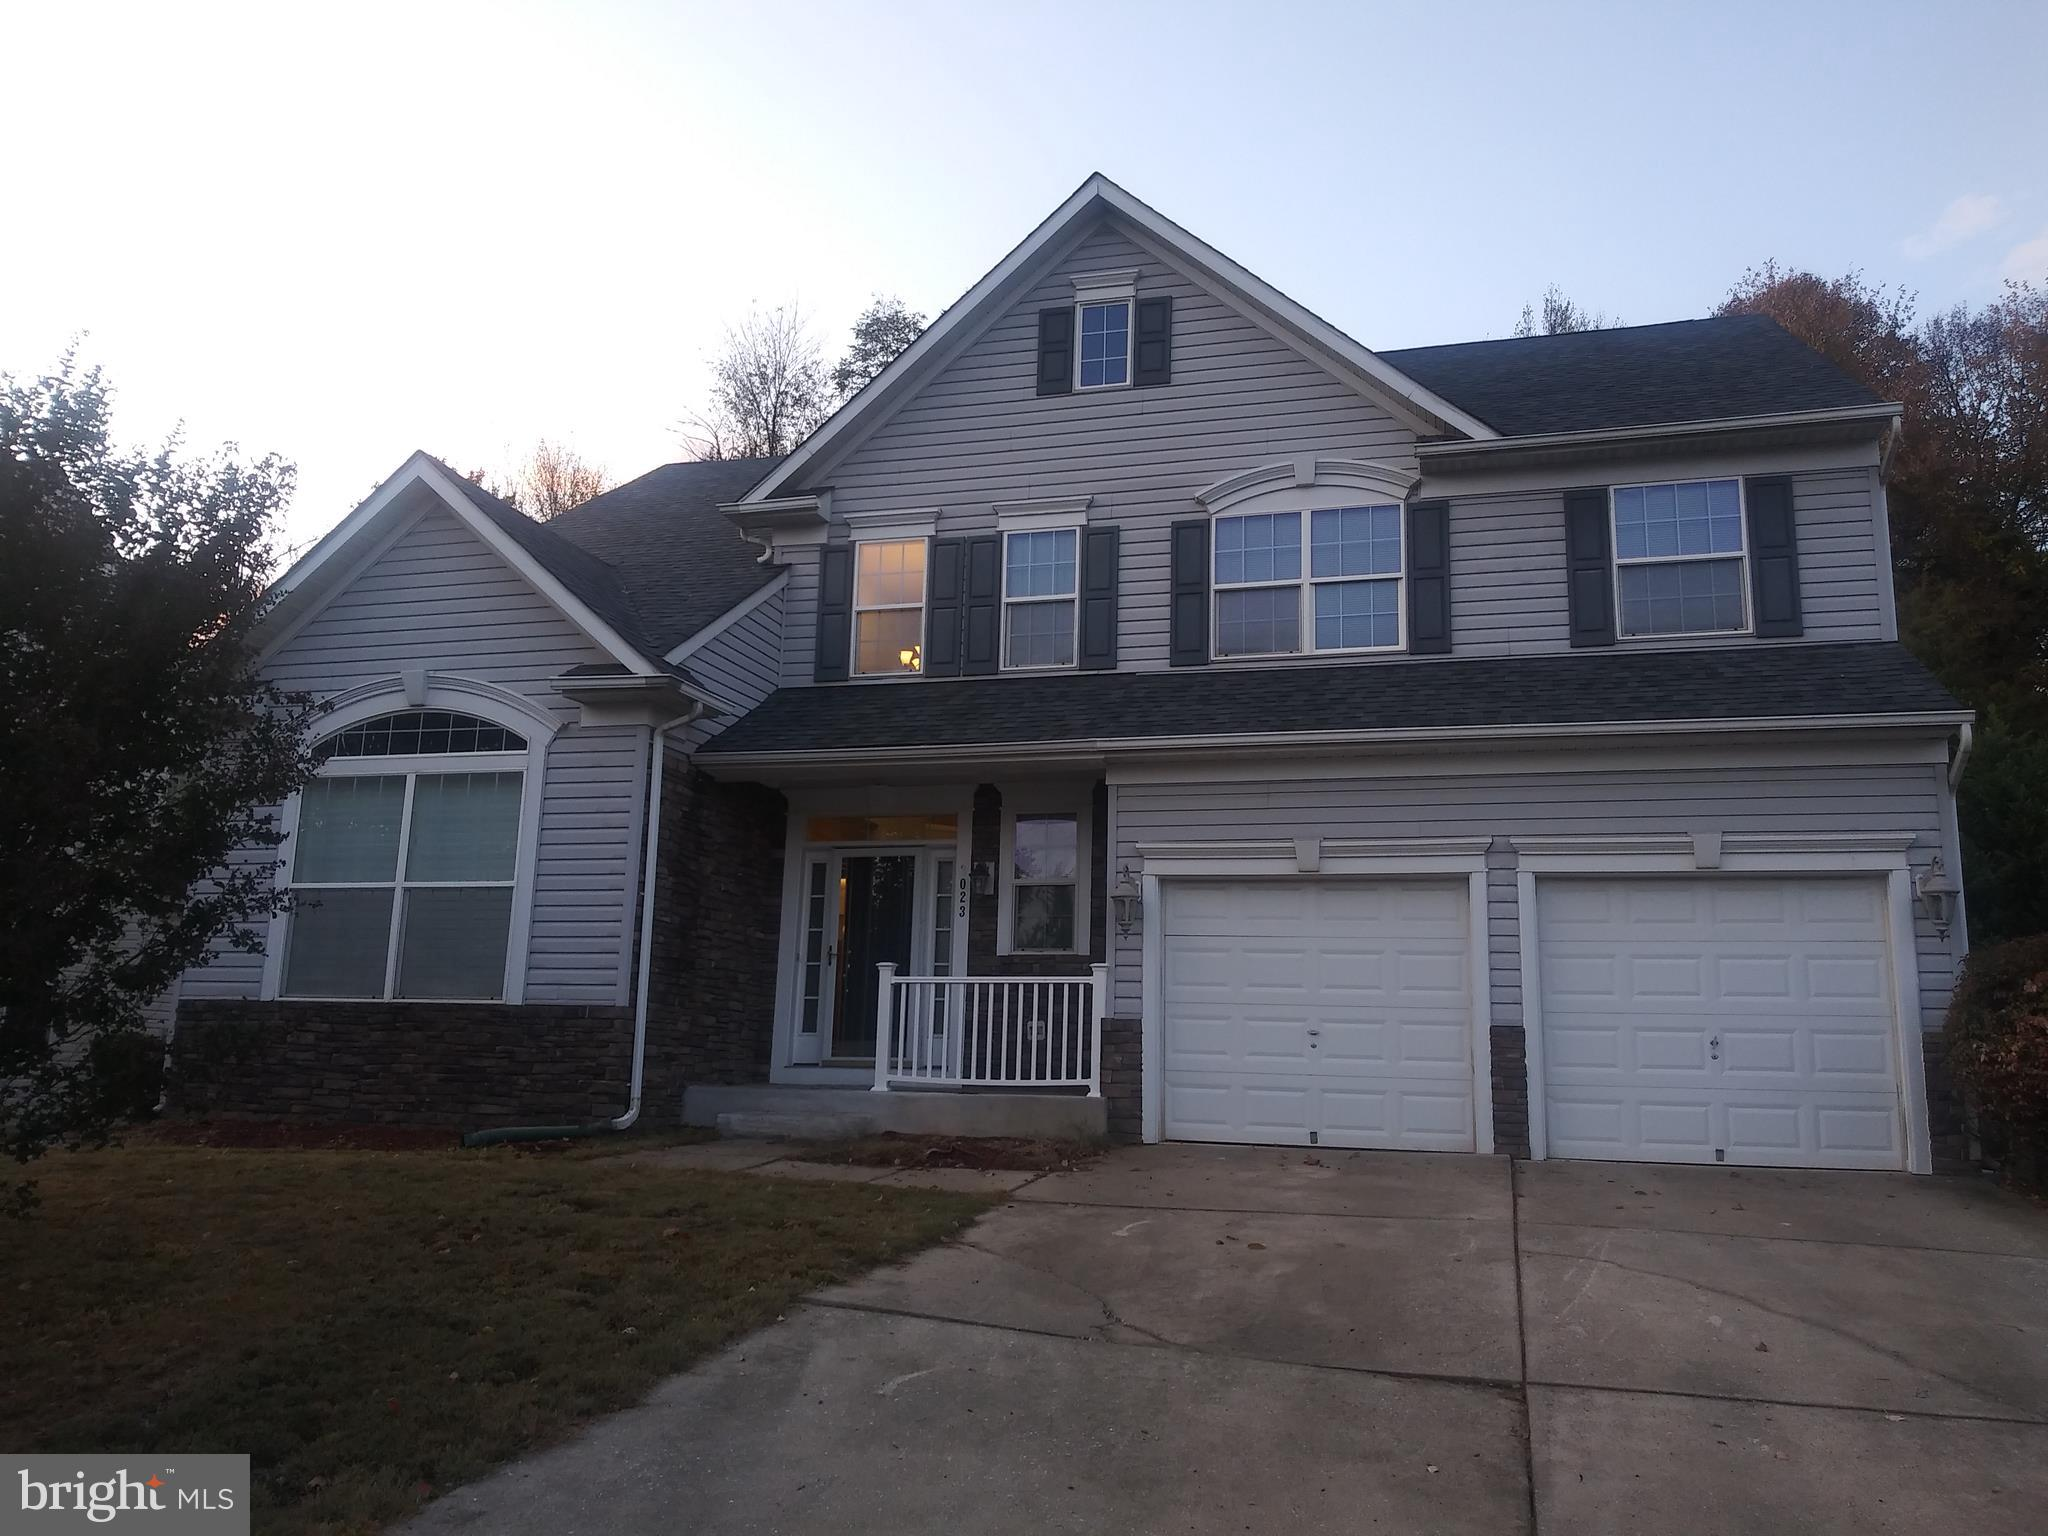 8023 ALLOWAY LANE, BELTSVILLE, MD 20705